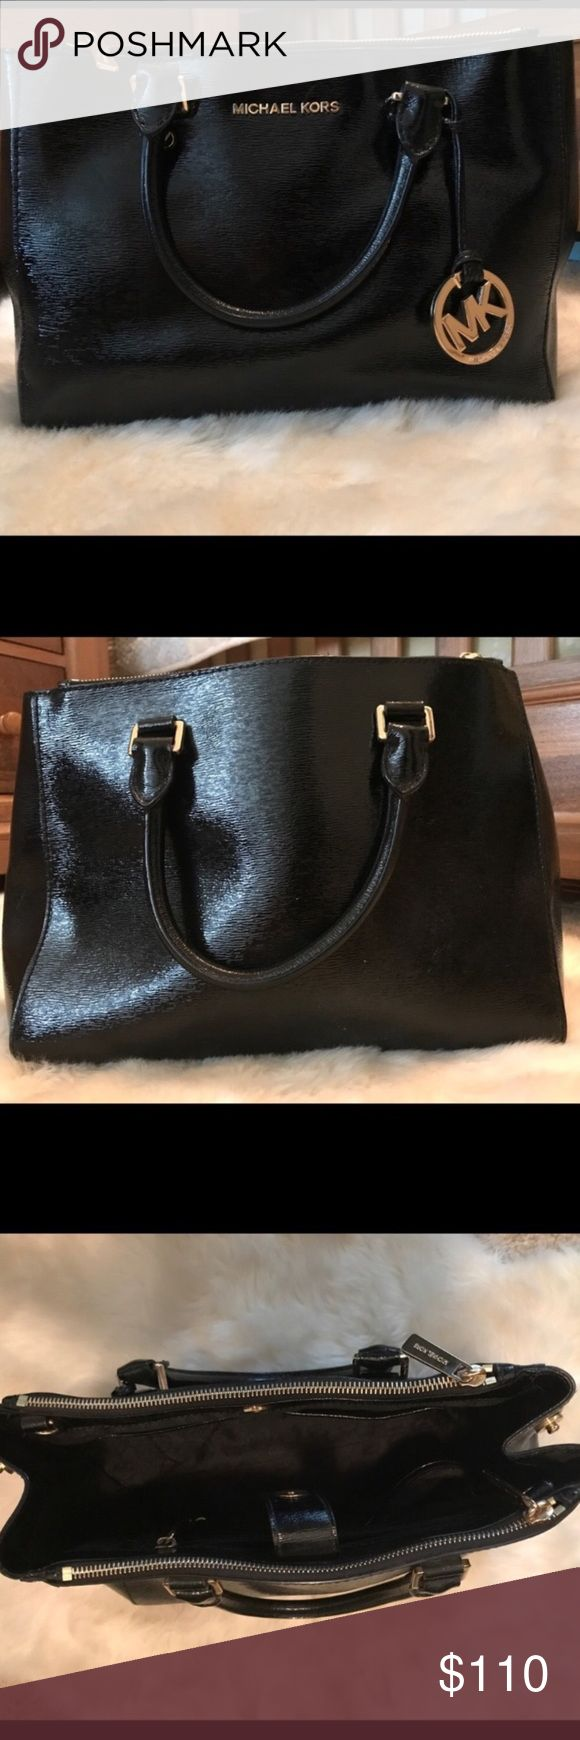 Michael Kors purse Perfect condition with a few minor scratches but not even noticeable! Taking offers Michael Kors Bags Shoulder Bags